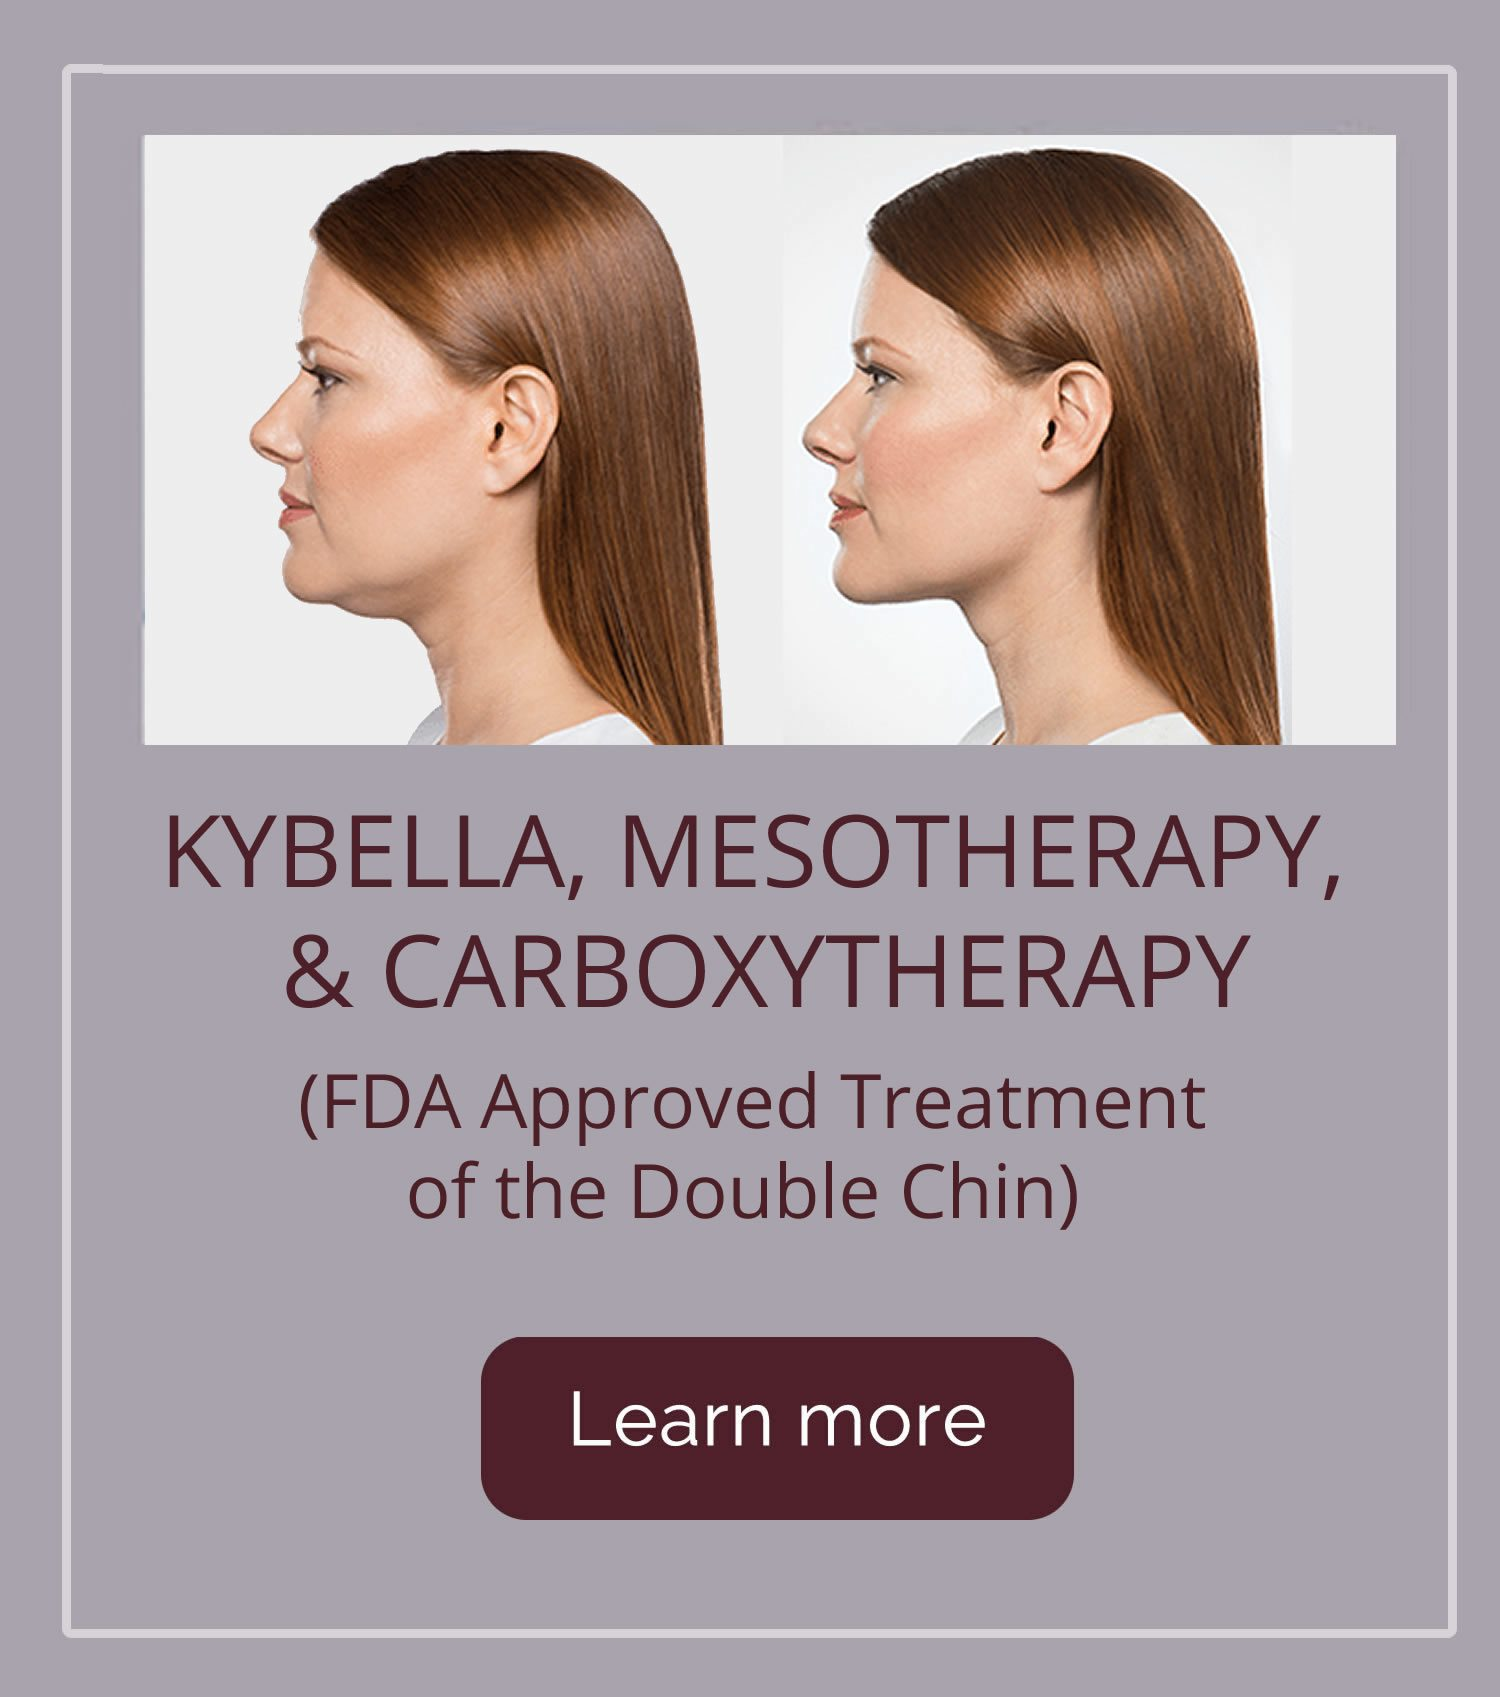 Kybella, Mesotherapy & Carboxytherapy